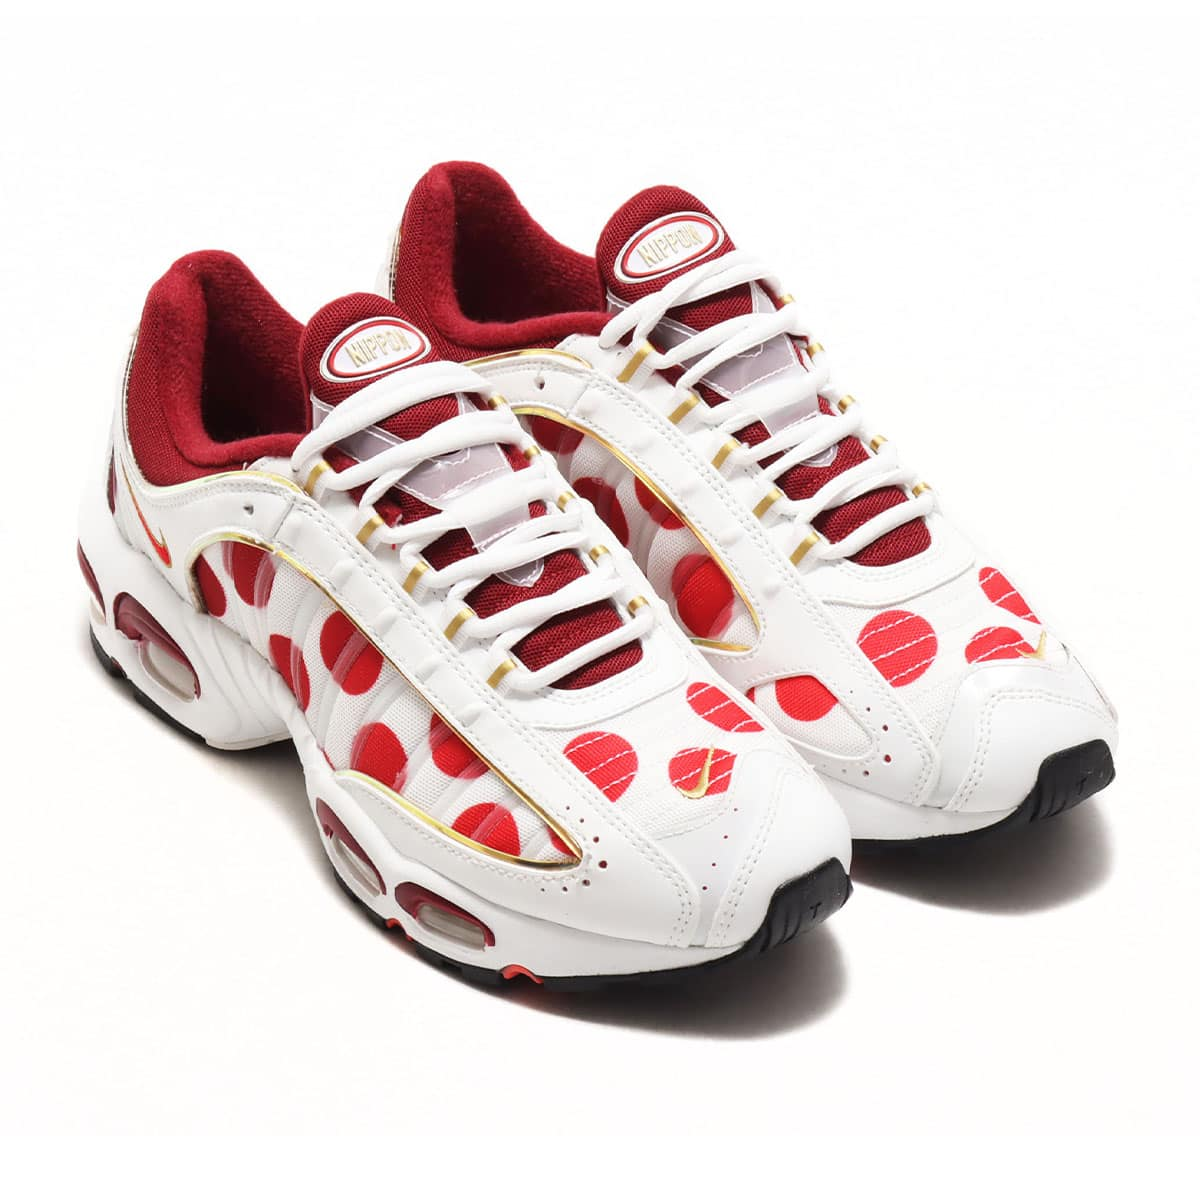 NIKE AIR MAX TAILWIND IV WHITE/UNIVERSITY RED-METALLIC GOLD 20SU-S_photo_large